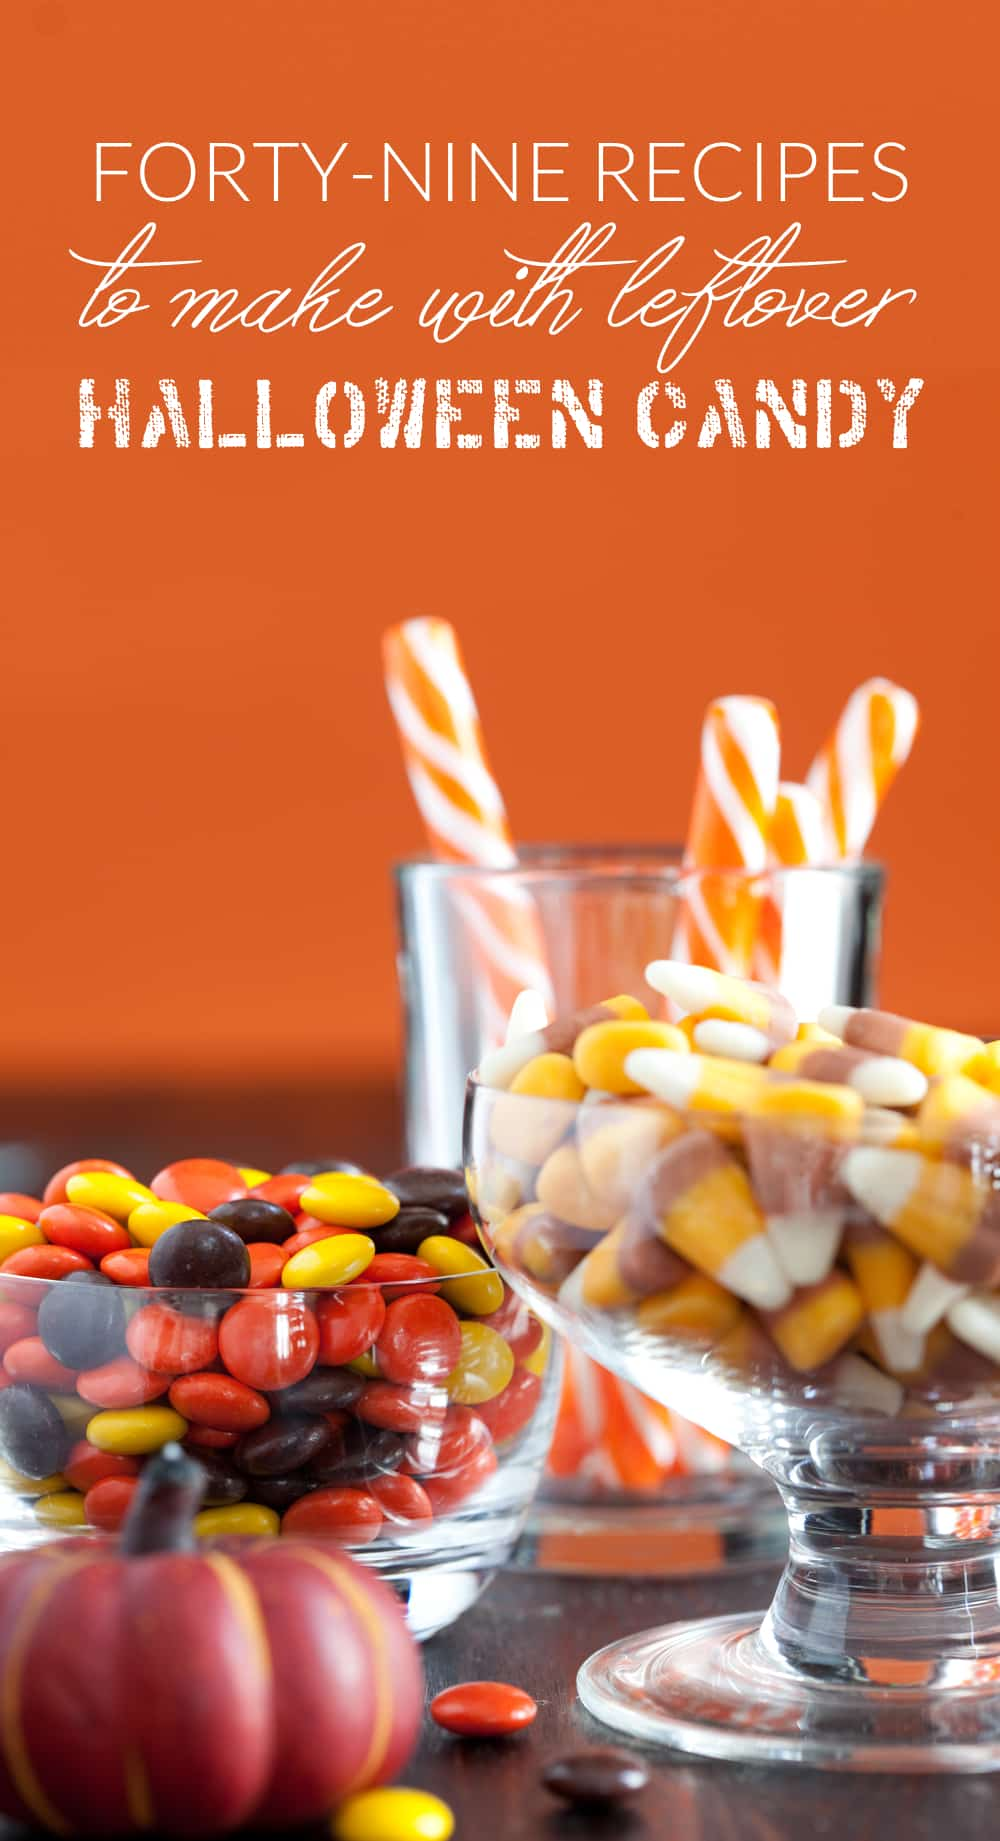 Whether you have leftover Halloween candy or just need something new to do with your favorite chocolate treats, you won't want to miss these delicious candy bar recipes. #CandyBar #LeftoverHalloweenCandy #HalloweenCandy #halloween #chocolaterecipes